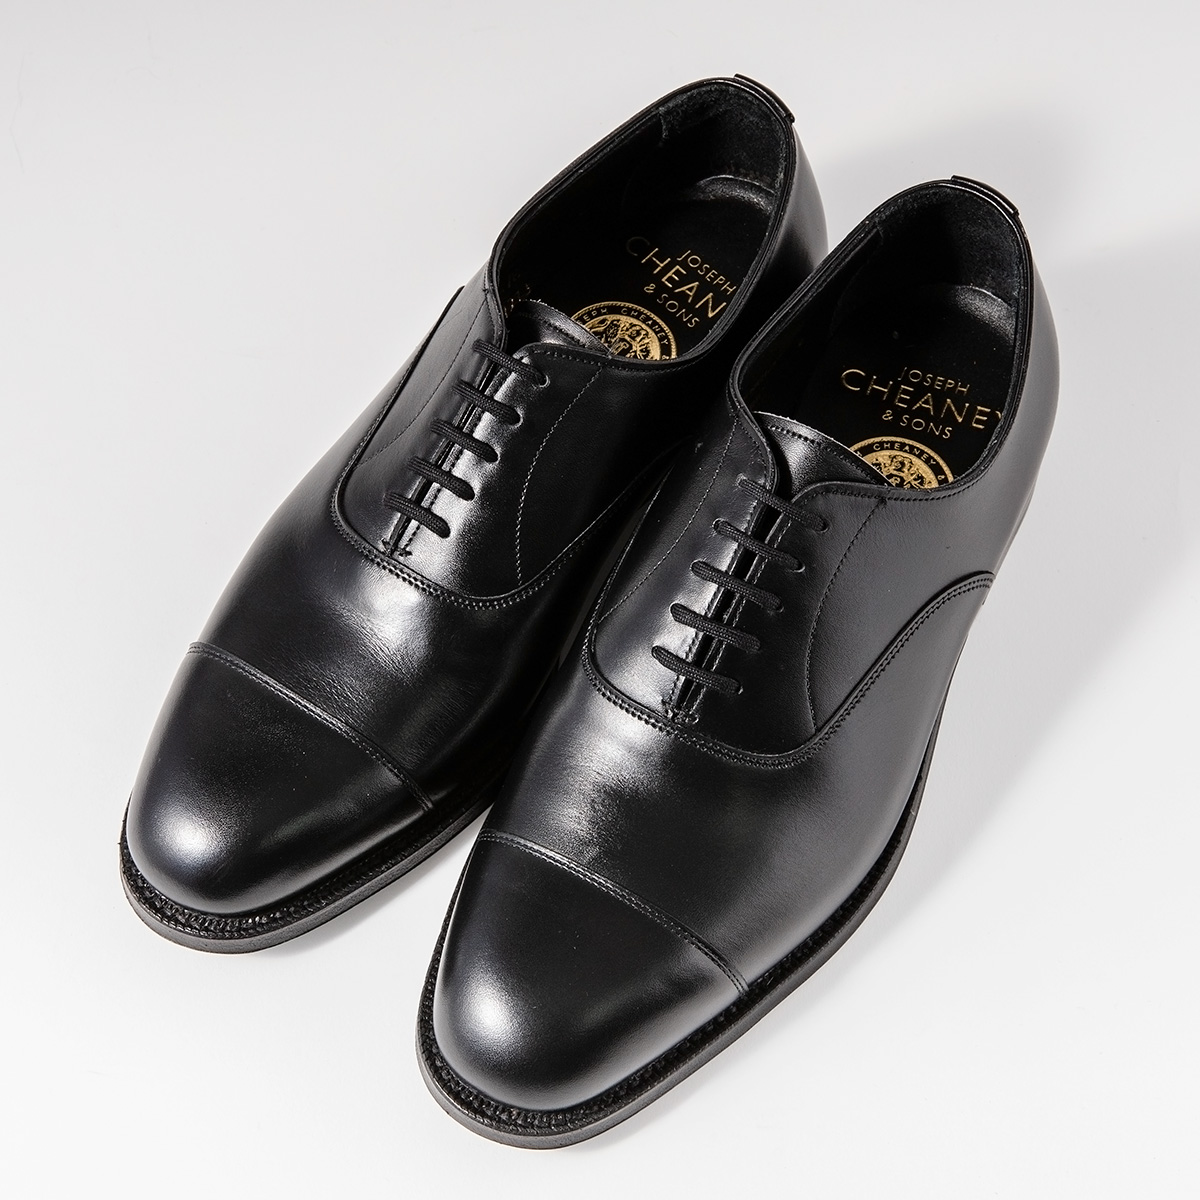 JOSEPH CHEANEY 6184 COLLECTION GEOFFREY